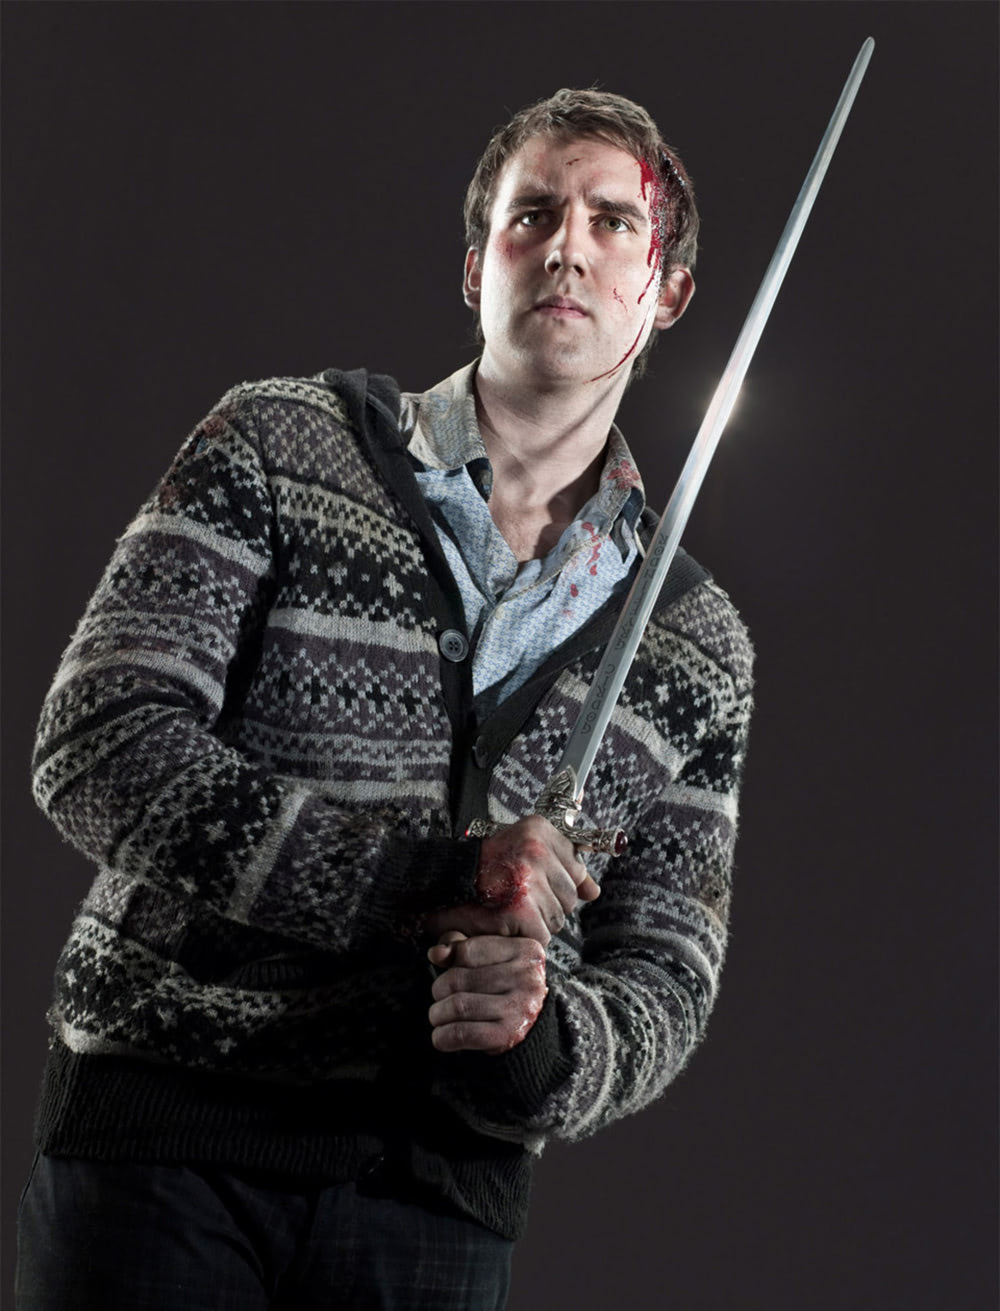 Neville Longbottom Sword of Gryffindor portrait